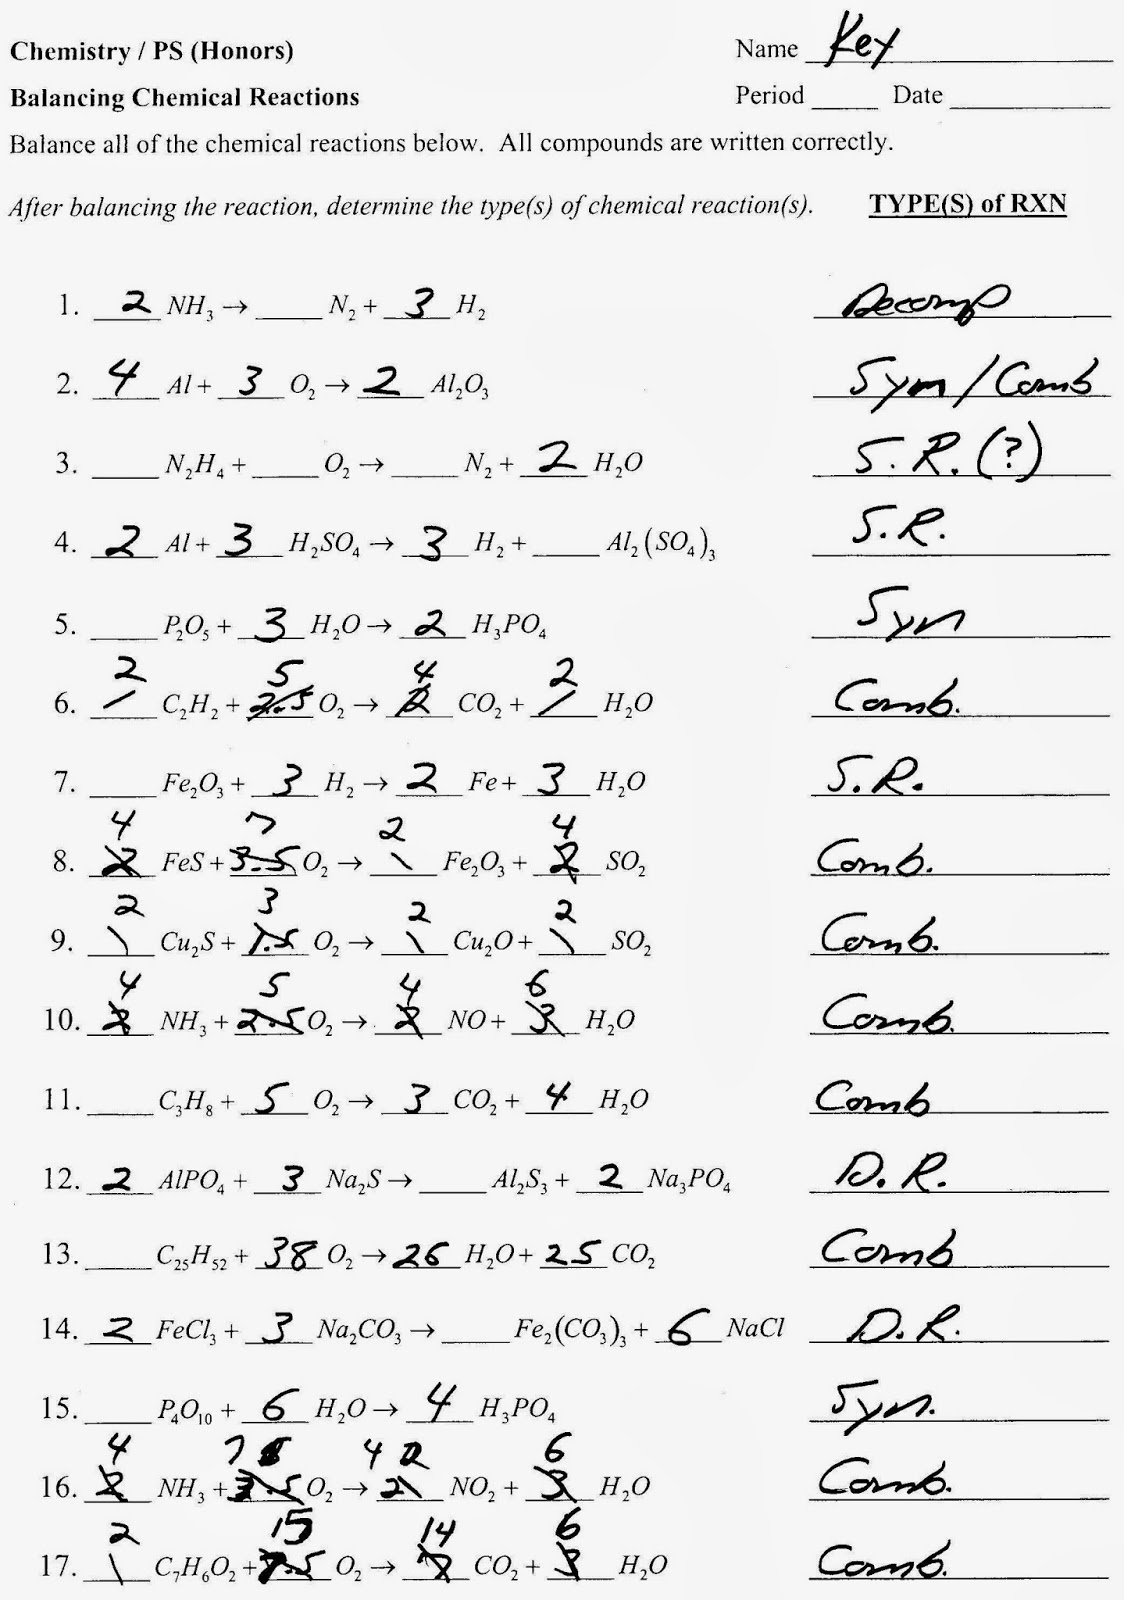 classifying chemical reactions worksheet answers - bagru.info